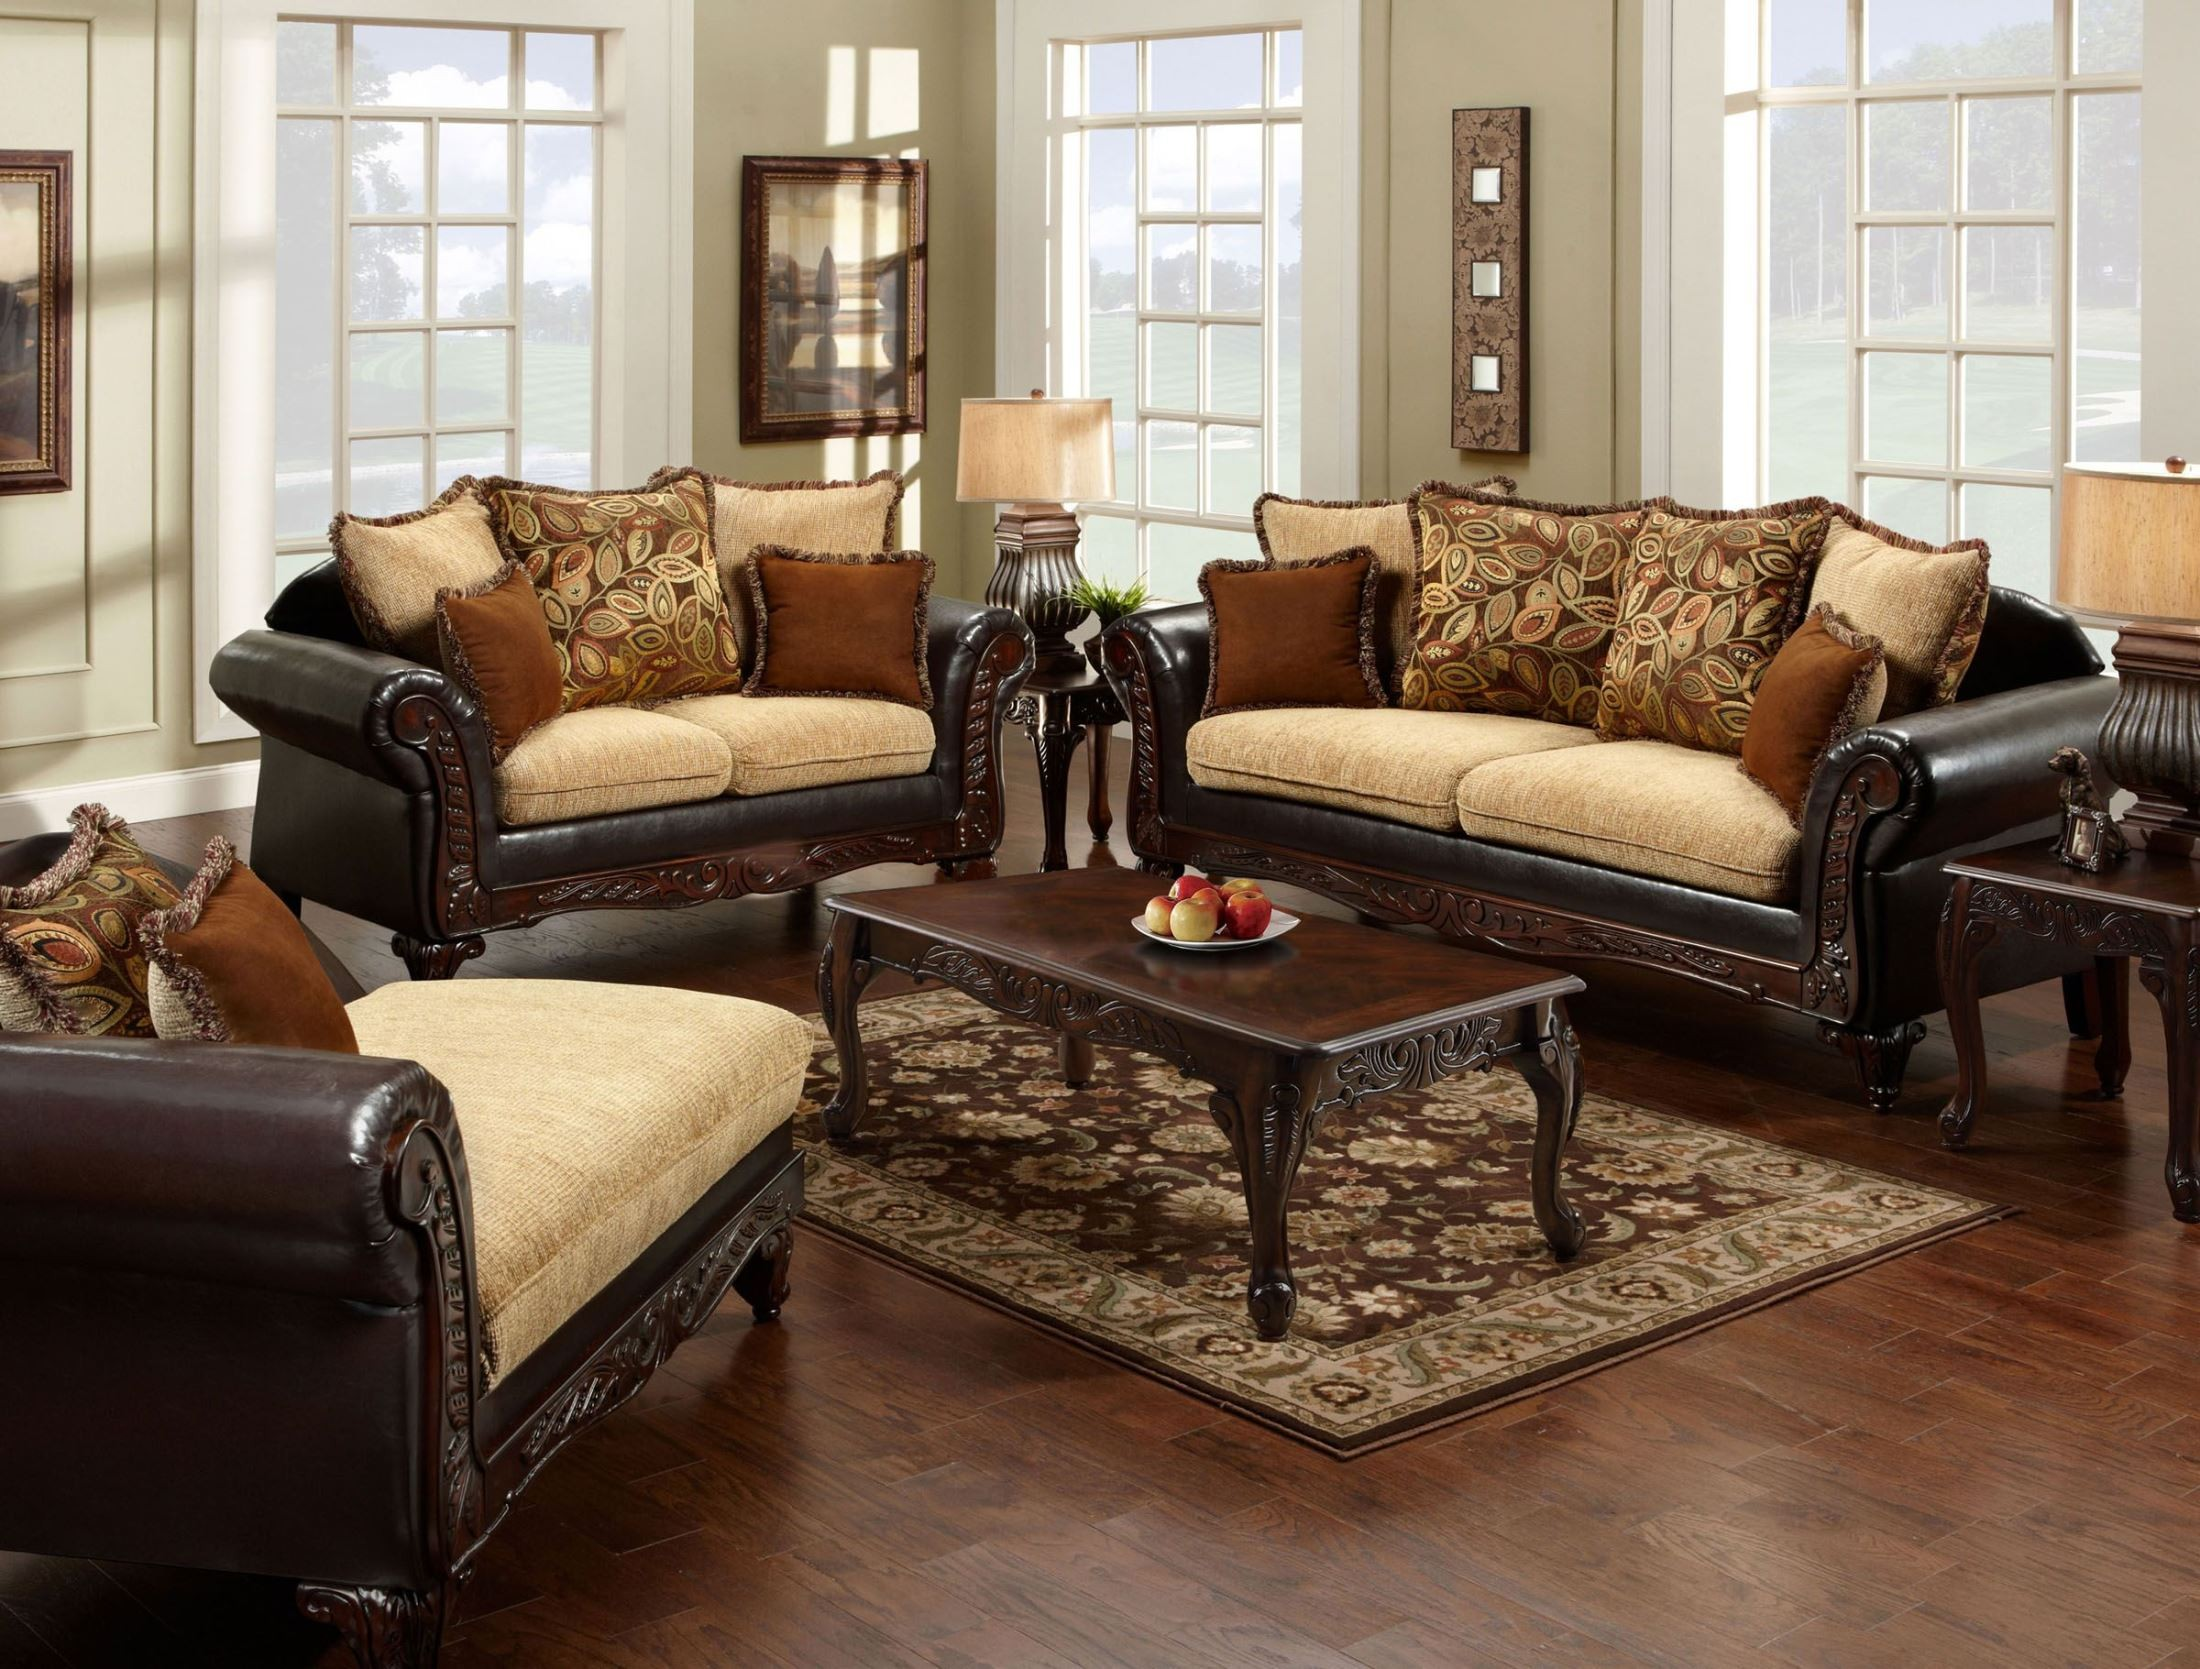 Doncaster Fabric And Espresso Leatherette Living Room Set From Furniture Of A